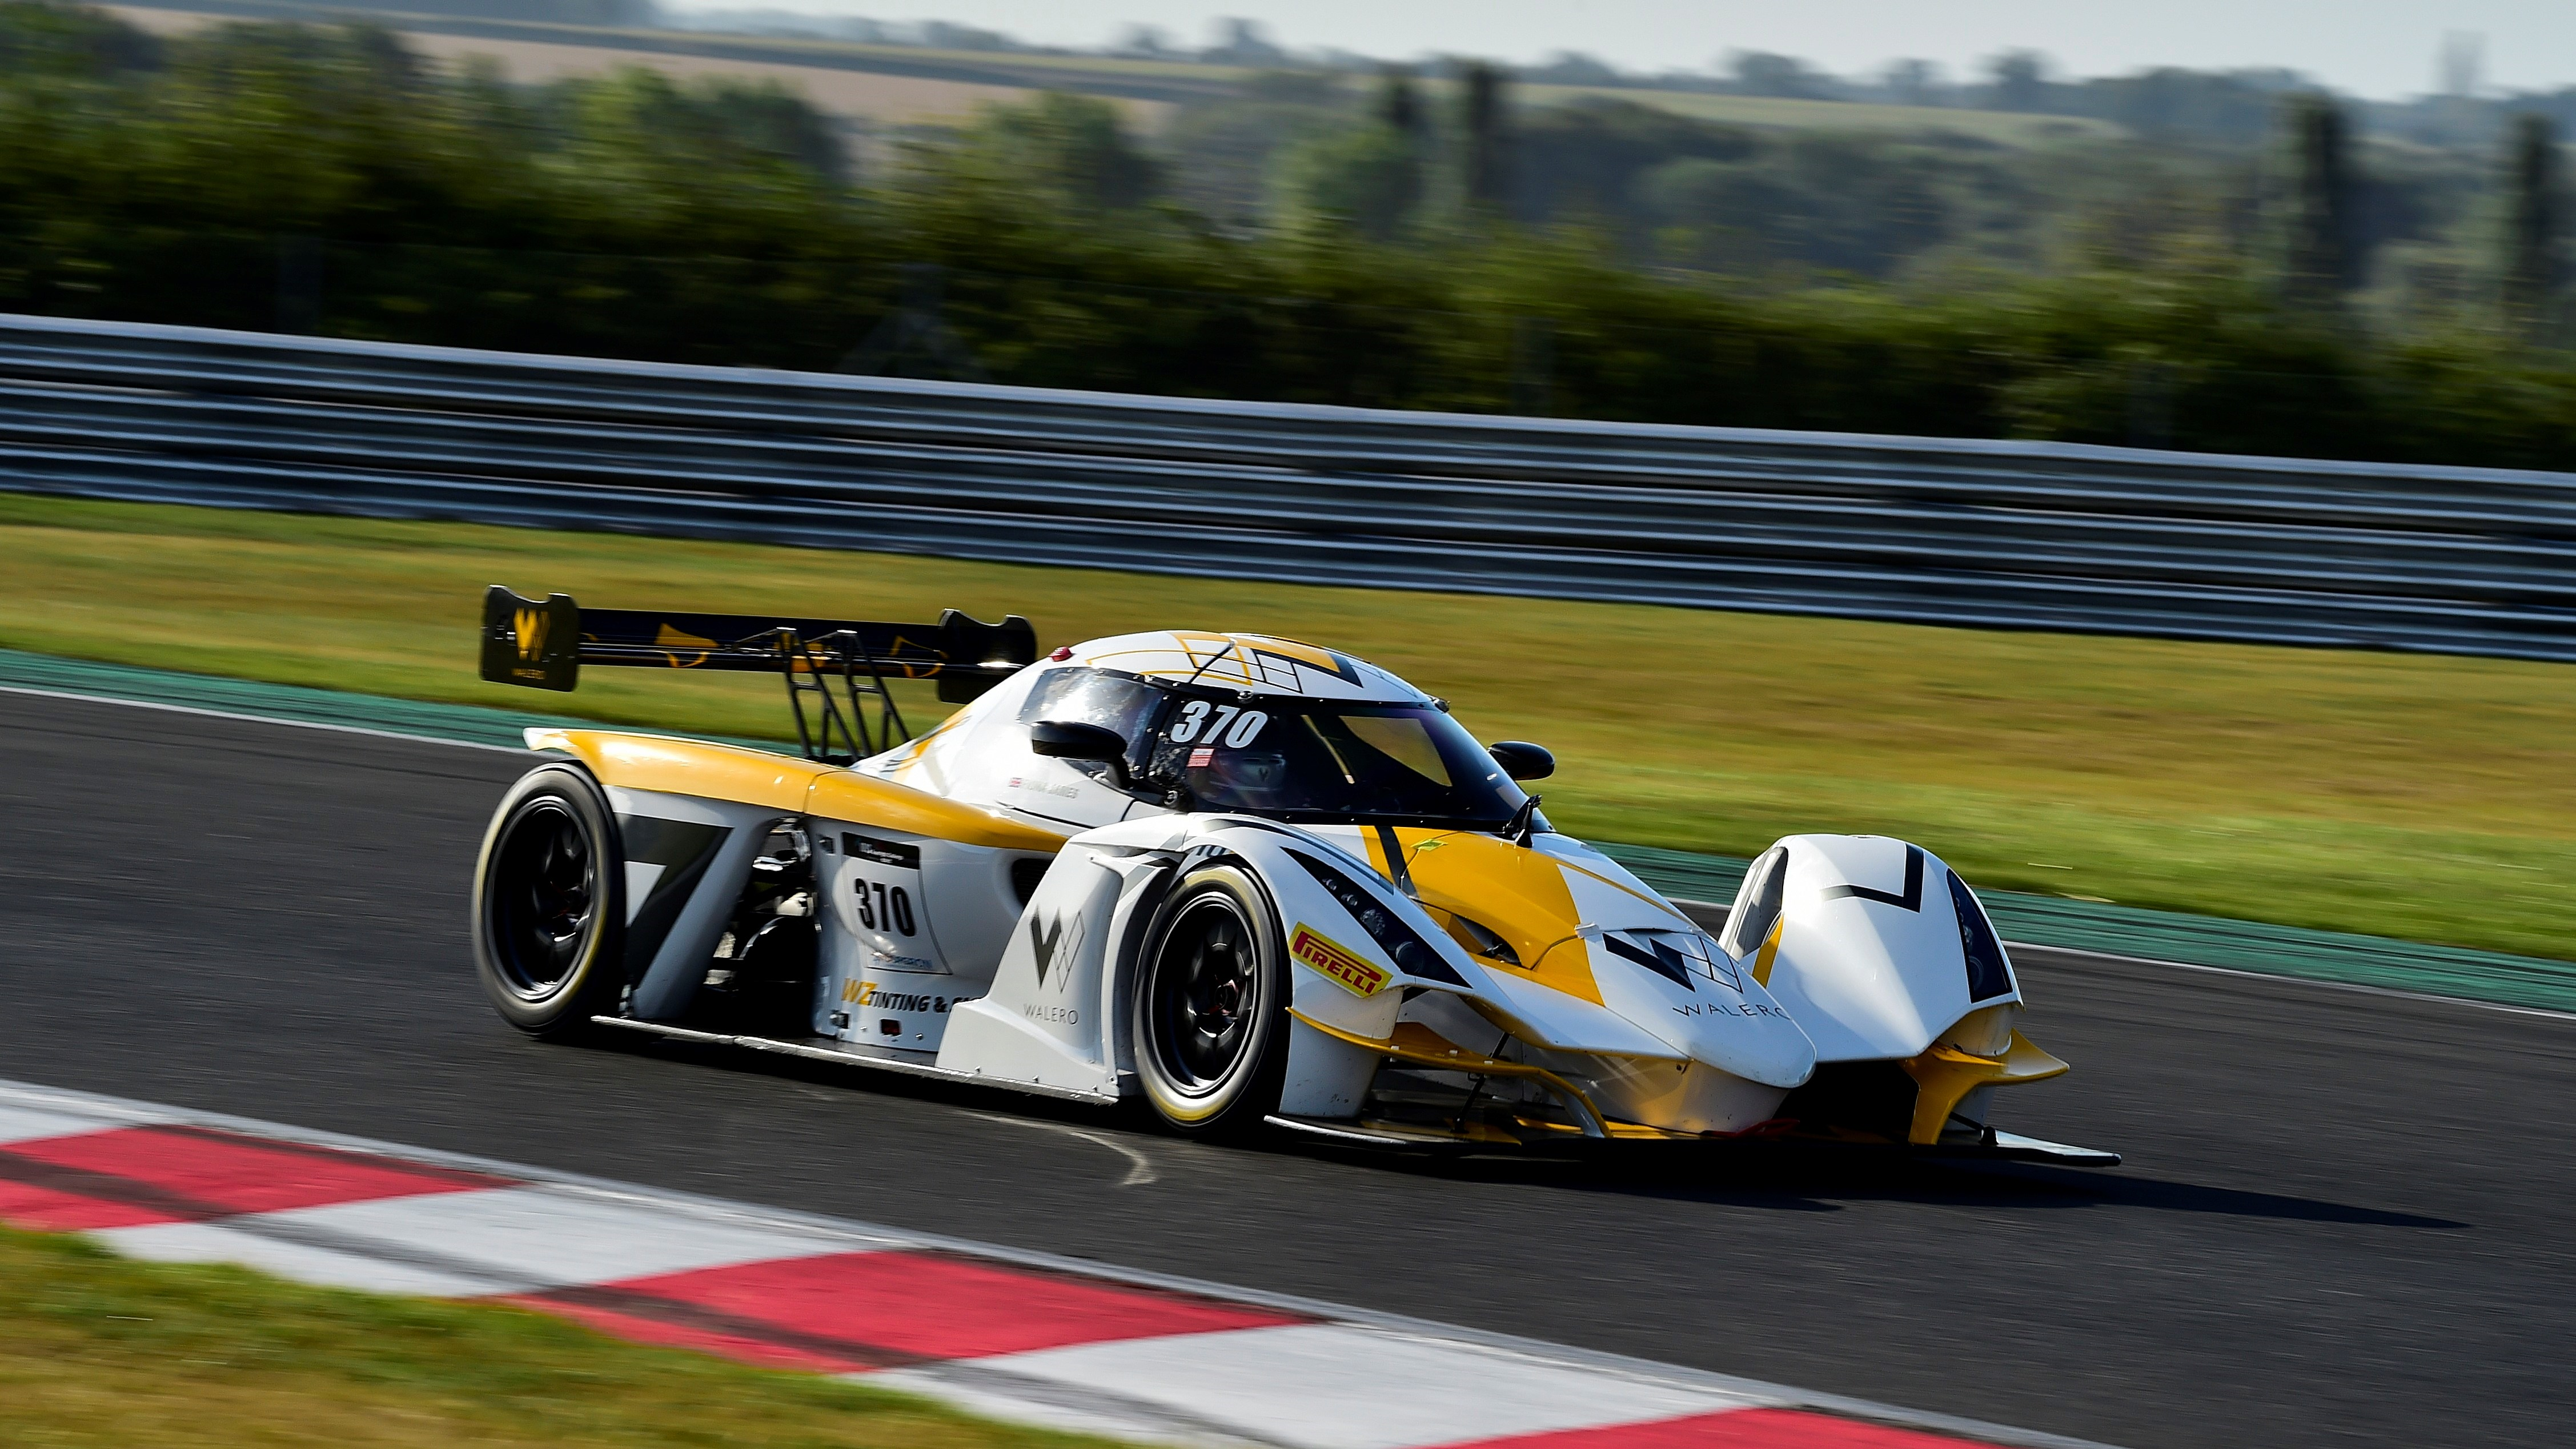 MSVR welcomes Supercar Challenge to Brands Hatch